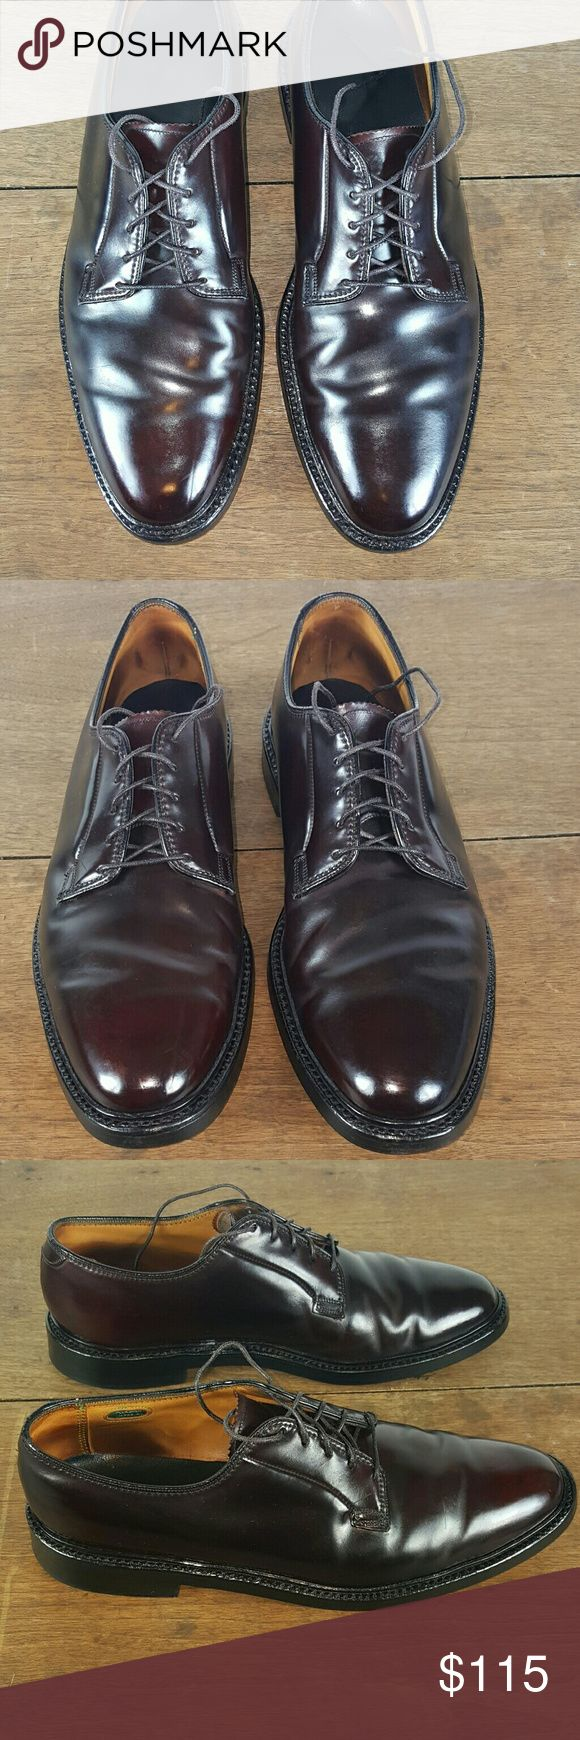 Florsheim Imperial Brown Cordovan Shoes, size 10C. They are in clean and great condition as pictured.  Thanks for Your interest,  questions and offers are welcome. Florsheim Shoes Oxfords & Derbys